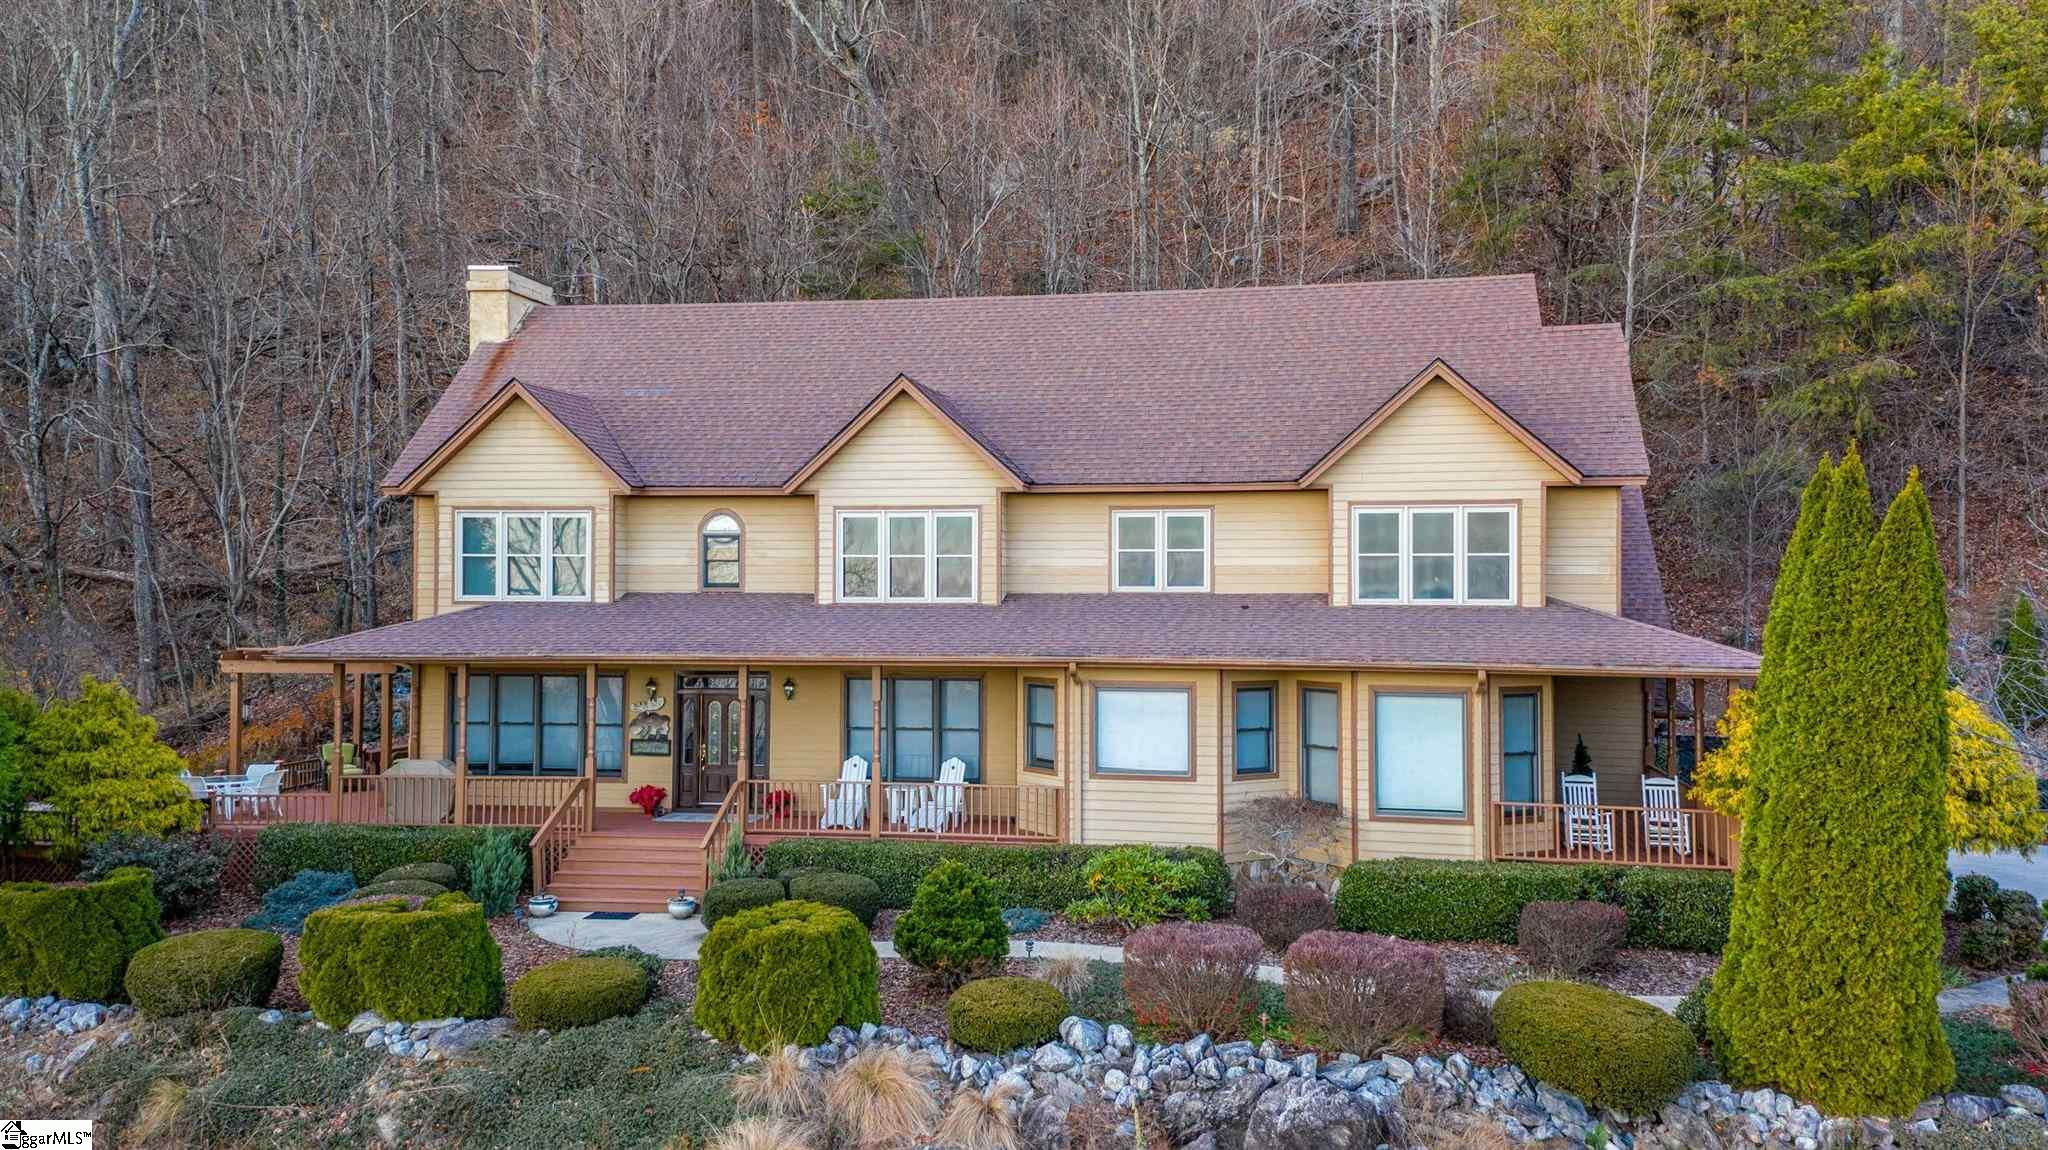 This fabulous home is perched at the top of Plumley Summit Drive, overlooking all of Glassy Mountain!  Experience the beauty of this welcoming home.  At 2100ft, you can see the Blue Ridge Escarpment during the day and thousands of twinkling lights at night.  Enjoy the relief of the cool breezes in the Summer, see the mountainside burst into Fall color, watch the pristine snow cover the mountain peaks and see the landscape come to life with the dawn of Spring.  Imagine entertaining your friends and family in your cozy living room in front of a roaring fire on a cool evening or lounging in the hot tub with this awe-inspiring view while listening to the sound of running water from the 50-foot waterfall.    The extensive landscaping and expansive front porch add to the curb appeal of this beautiful home.  Entering the beautiful foyer, you are immediately aware of all the upgrades in this home.  You are drawn to the cozy living room with a stone fireplace and the oversized dining room while enjoying the views from every window.  There is a gourmet kitchen with a walk-in pantry, new cherry cabinets, premium granite, a six-burner gas stove/oven, an electric oven, a warmer drawer, a new refrigerator and a large wine cooler.  The island provides generous workspace with room for bar stools.  Imagine your family gathered around the table in the spacious breakfast area enjoying a casual meal together.  Climb the beautiful staircase to all four bedrooms and a laundry.  The spacious master bedroom suite has a large, spa-like bathtub overlooking the outdoor beauty surrounding you.  You will love the huge closet.    There are three more bedrooms each with their own grand view!  There is a large bathroom with two separate wet areas.  You also have a large storage area next to the bathroom that would allow allocating some of that space to another bathroom.   Space available to easily install elevator.  Glassy Mountain is located between Asheville, NC, and Greenville and Spartanburg S